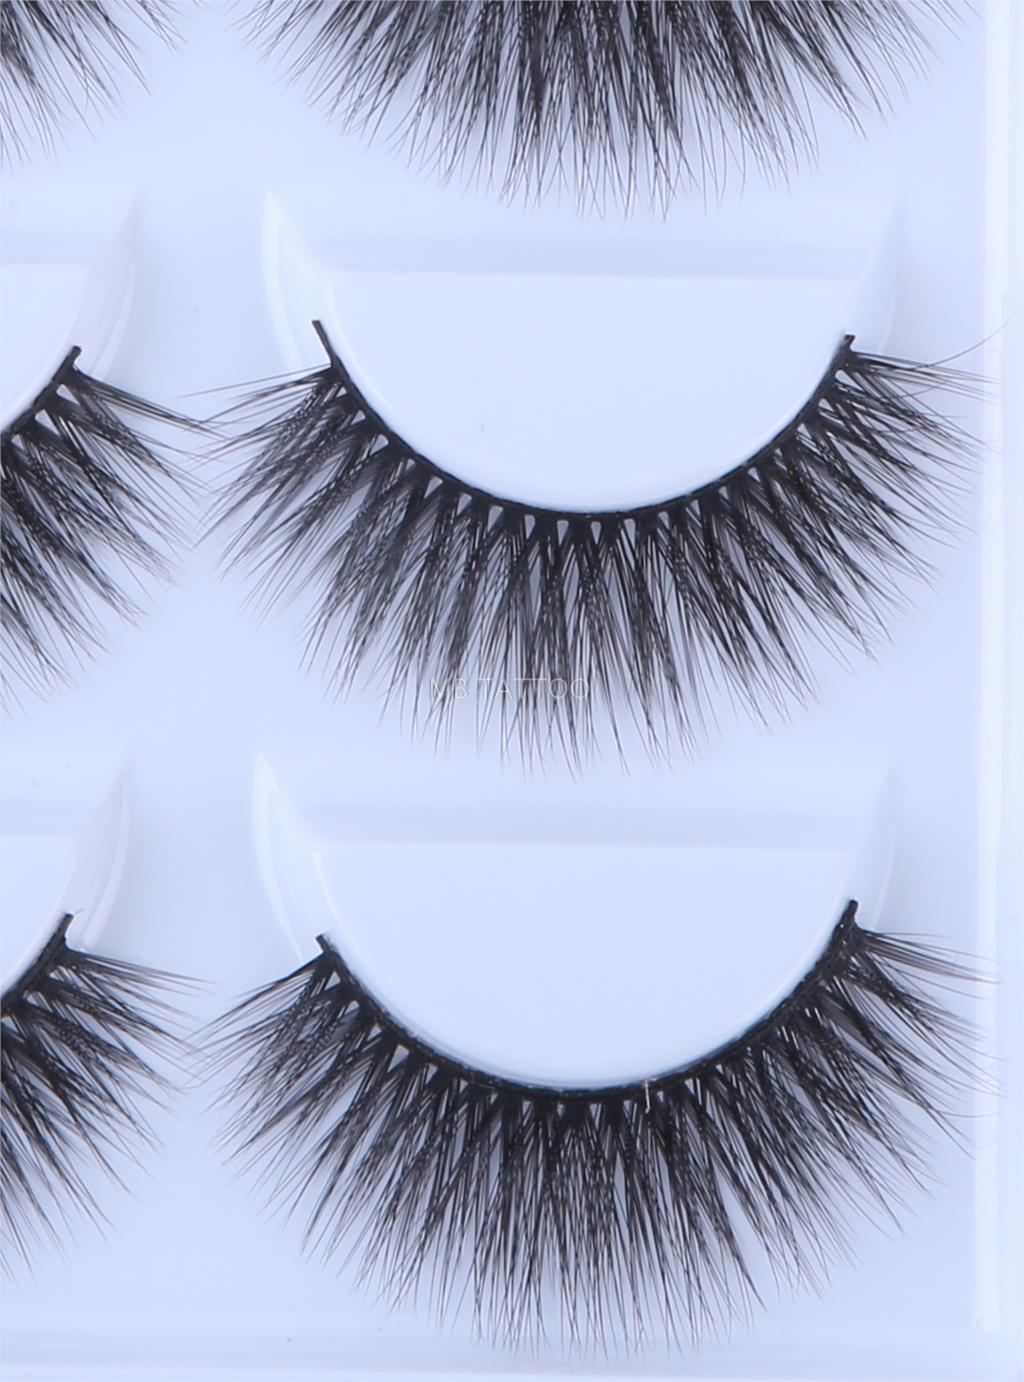 HTB1WIUNQ4TpK1RjSZR0q6zEwXXaM New 3D 5 Pairs Mink Eyelashes extension make up natural Long false eyelashes fake eye Lashes mink Makeup wholesale Lashes